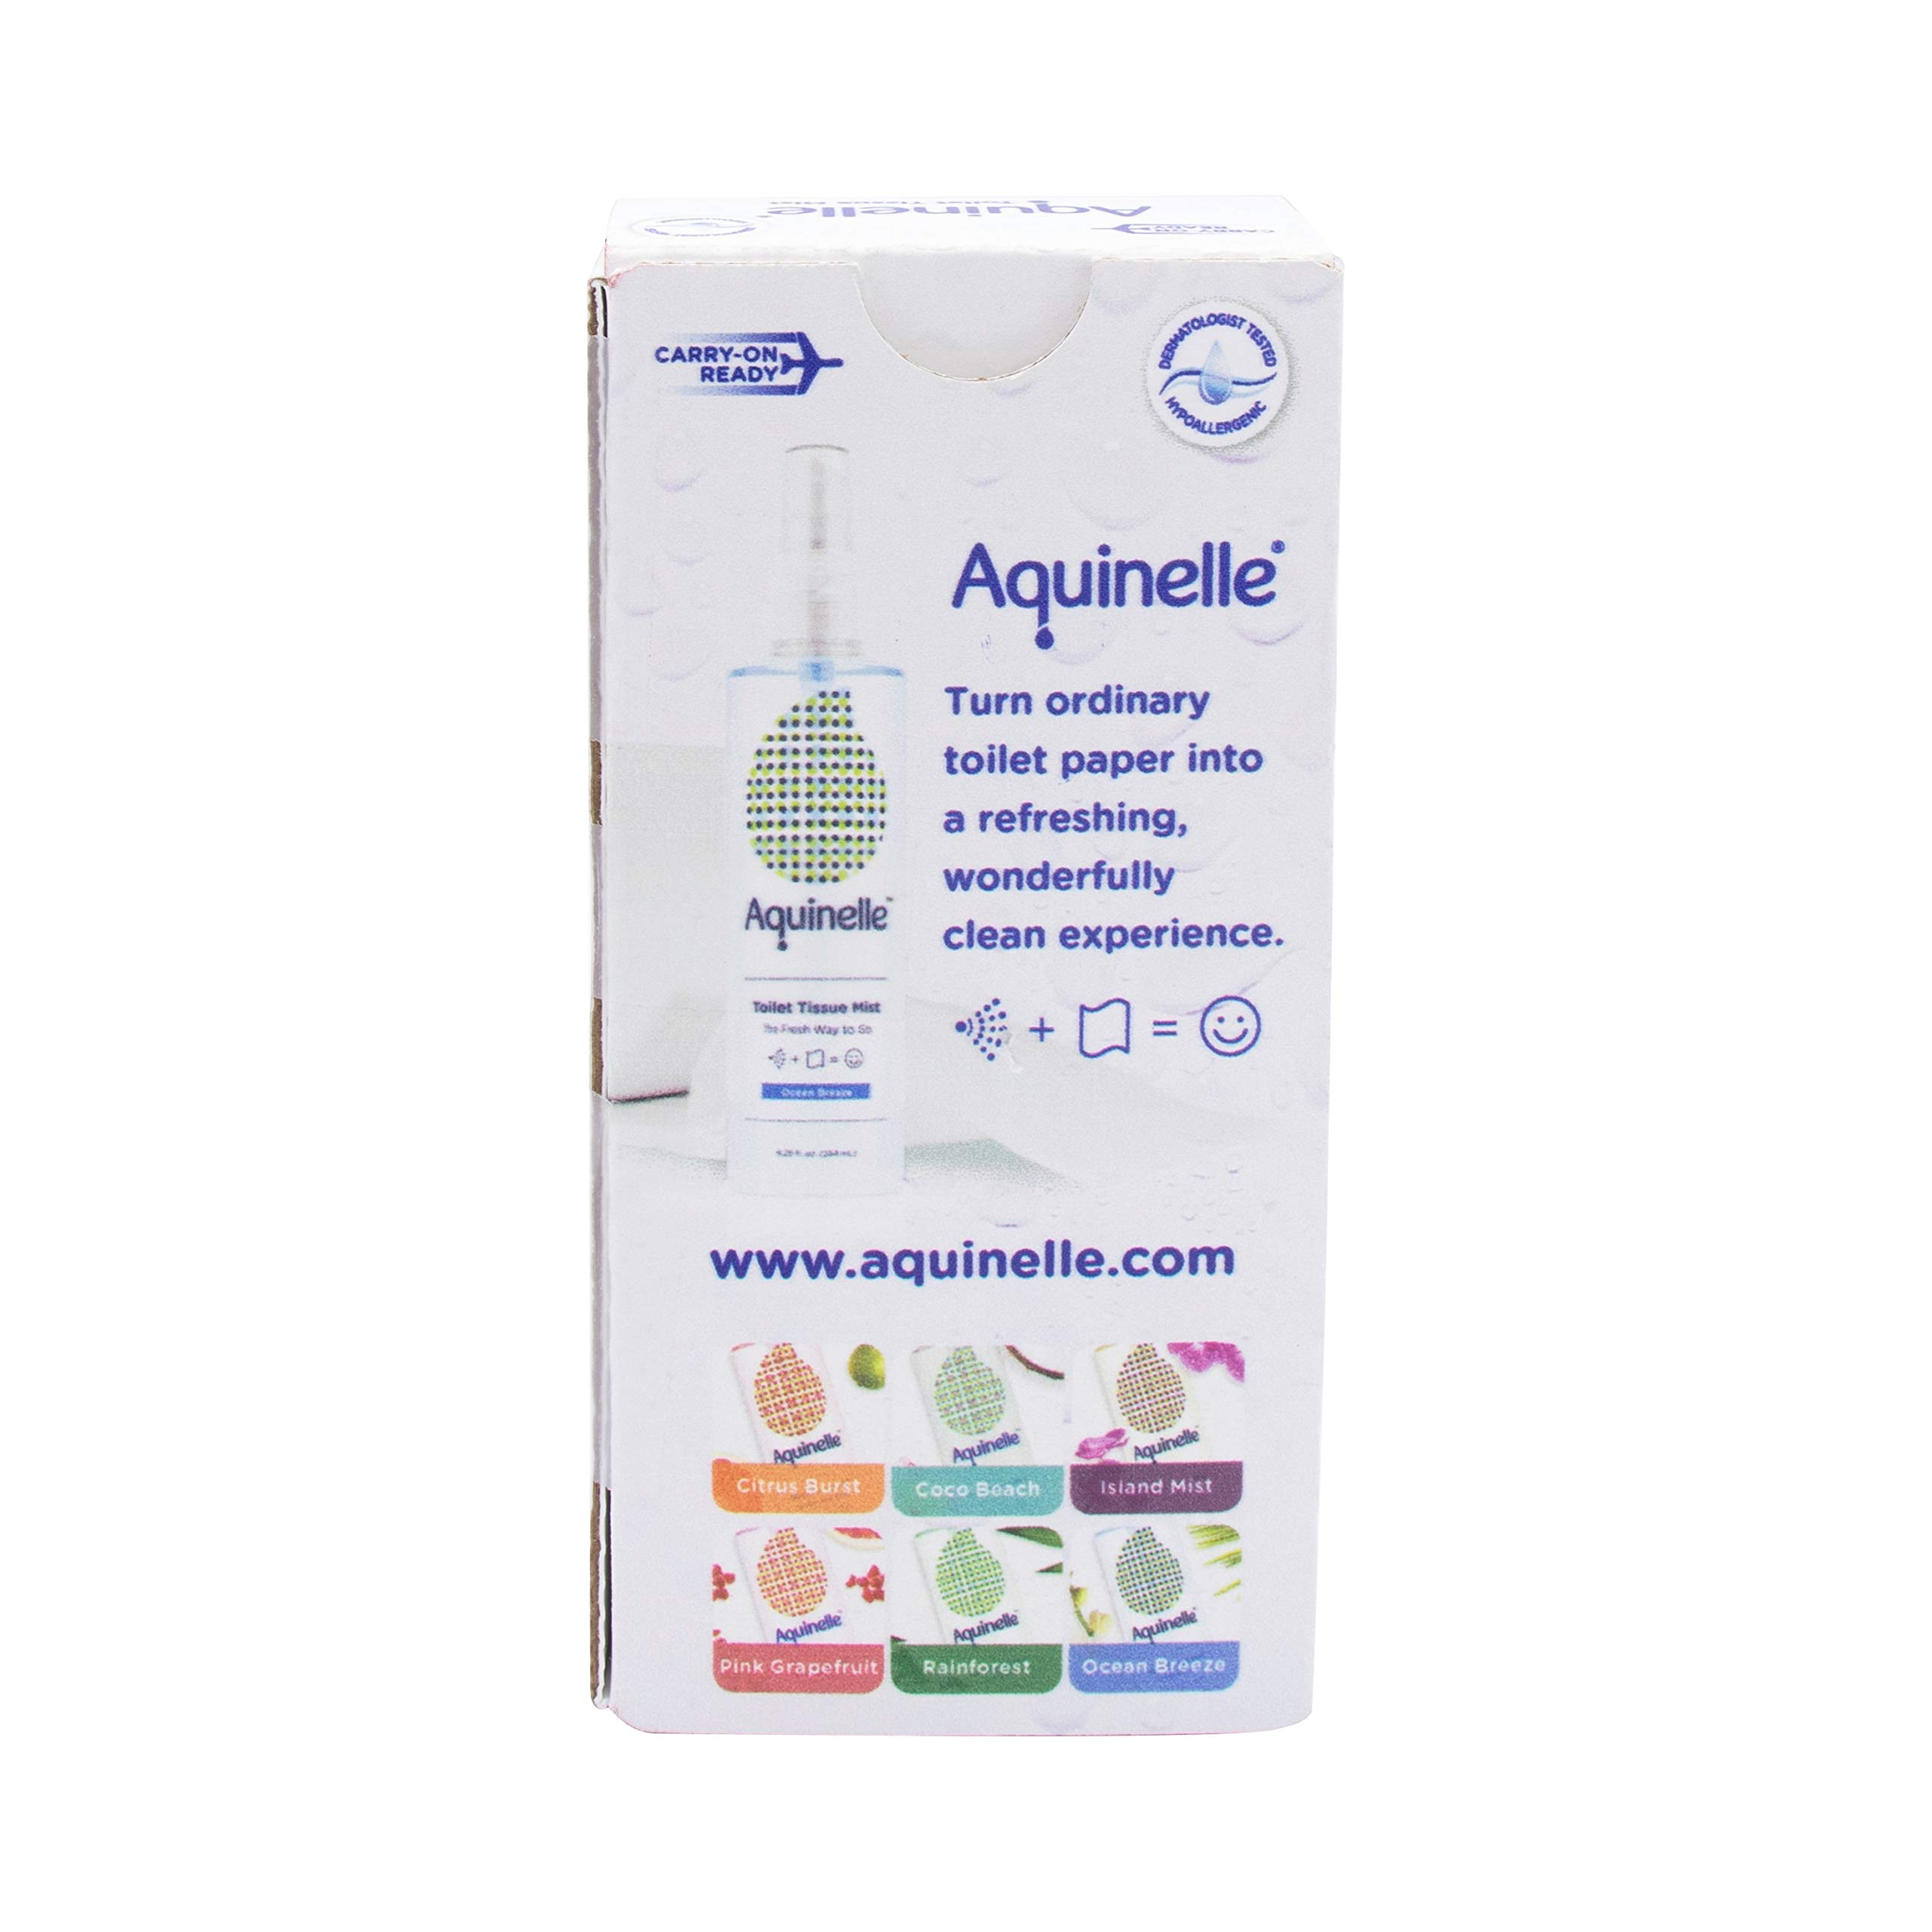 Aquinelle Toilet Tissue Mist Gift Set, Eco-Friendly & Non-Clogging Alternative to Flushable Wipes Simply Spray On Any Folded Toilet Paper (2 Pack Rain Forest 3.25 oz) by Aquinelle